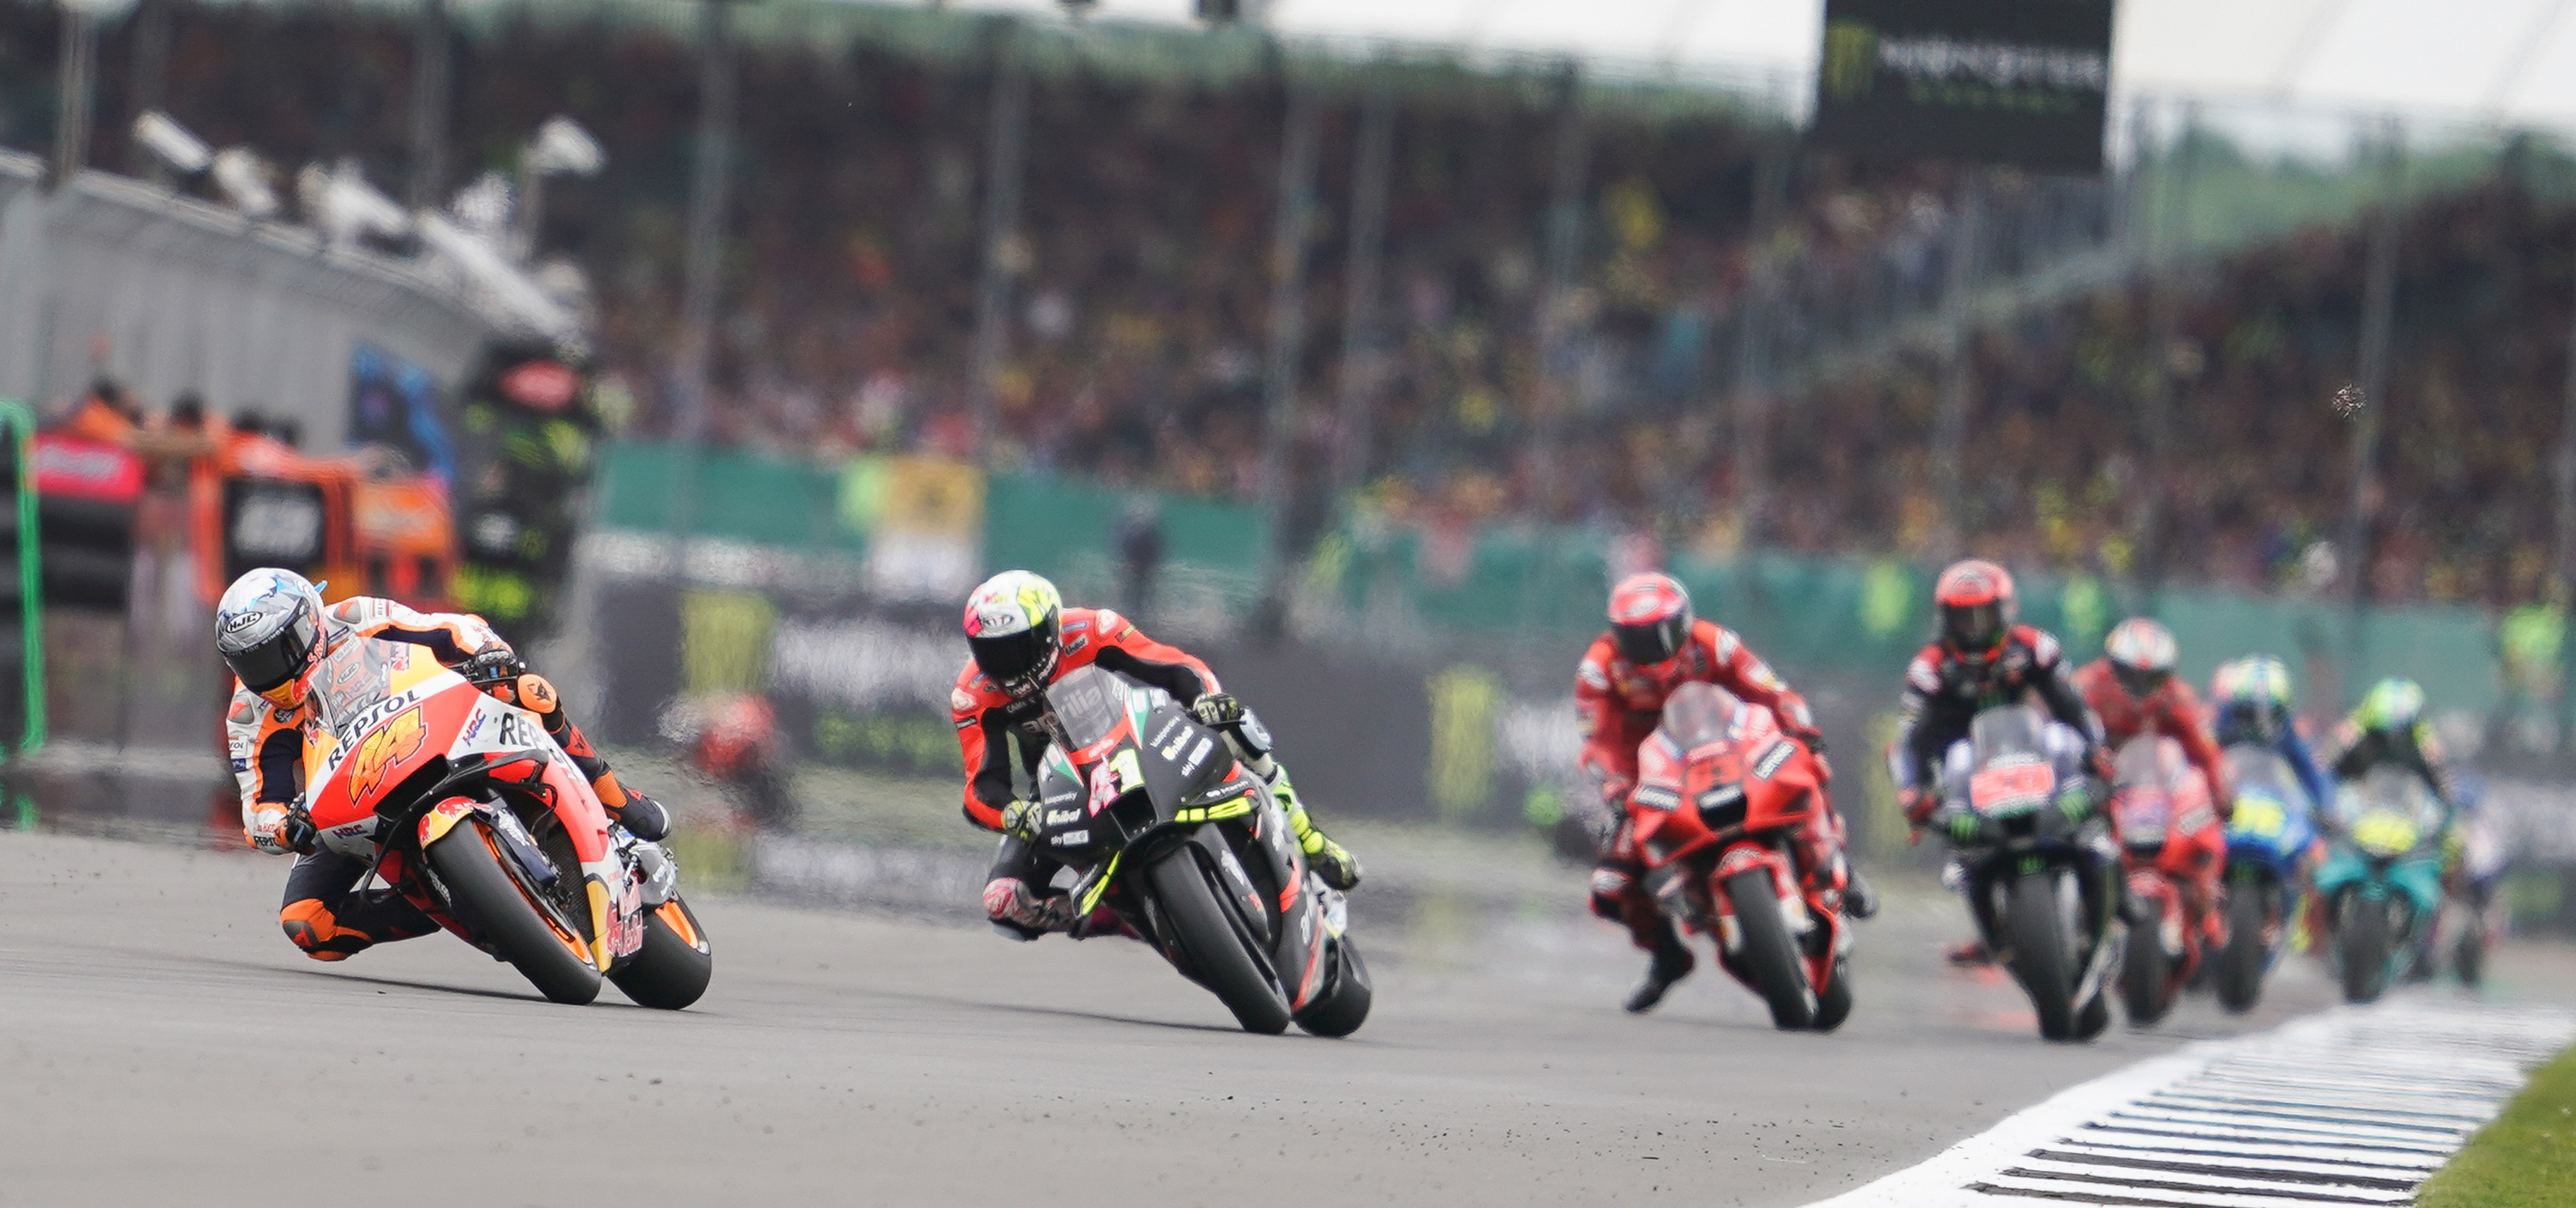 Pol Espargaró finishes fifth at Silverstone